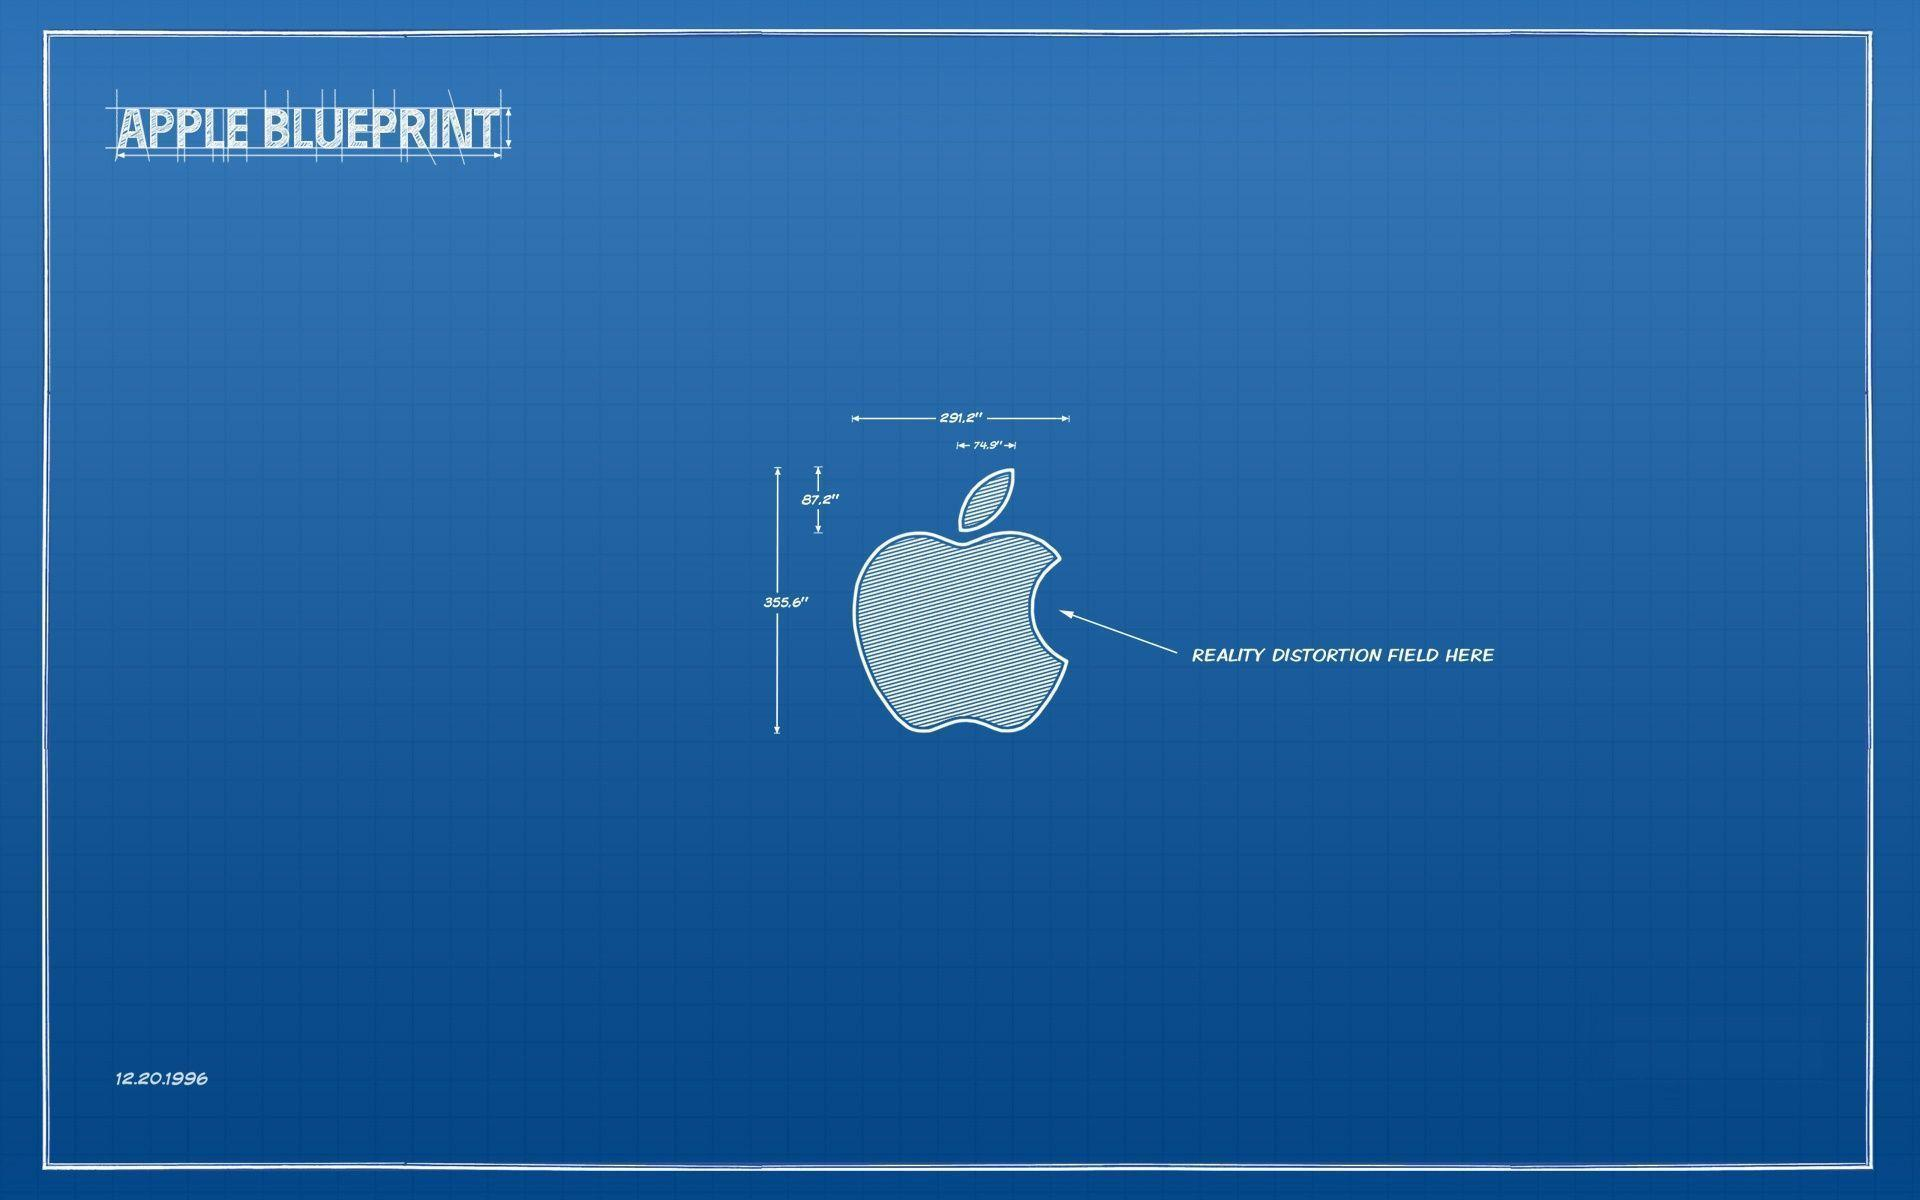 Cool Apple Related Pics Google Search: Funny Mac Wallpapers